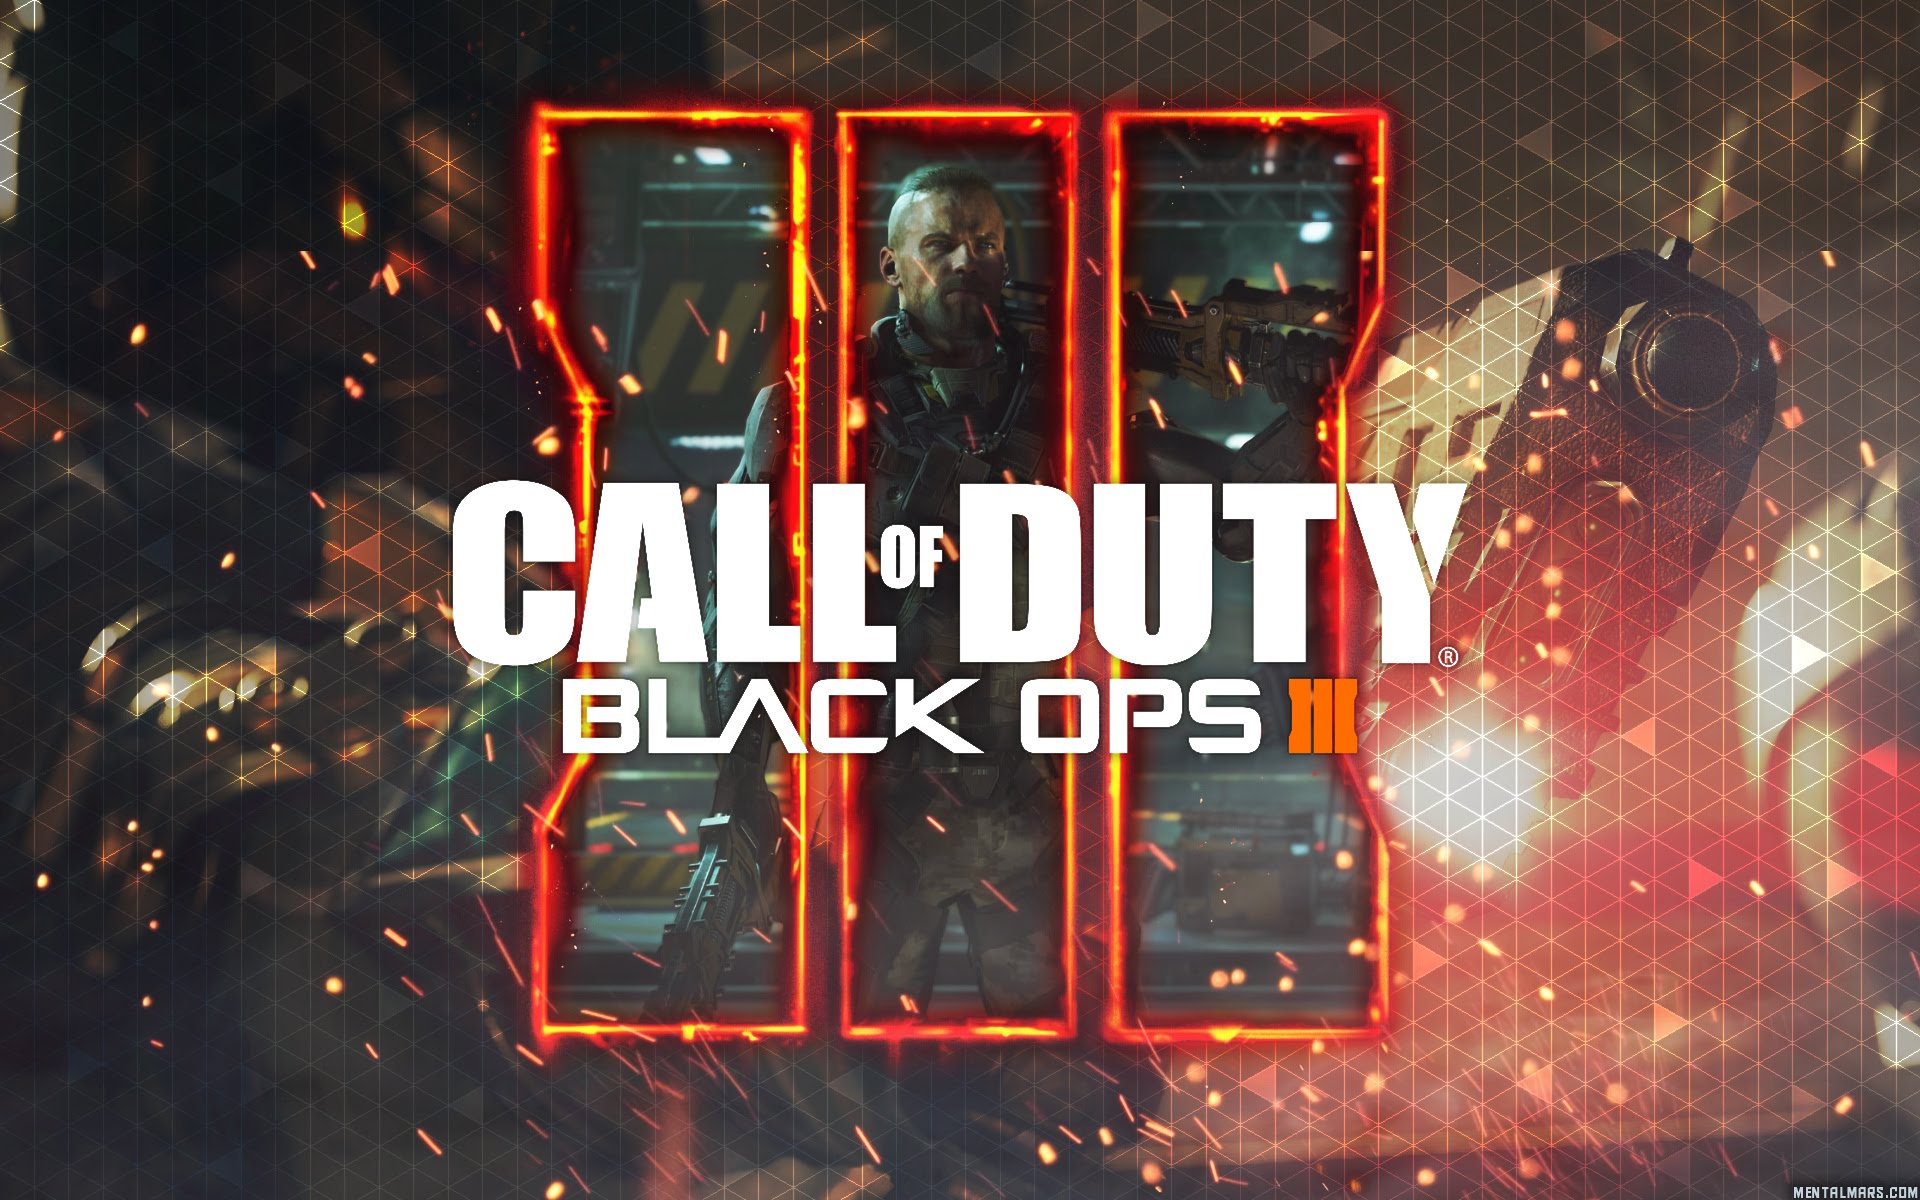 Call Of Duty Black Ops 3 Hd Wallpapers: 2048x1152 2016 Call Of Duty Black Ops 3 HD 2048x1152